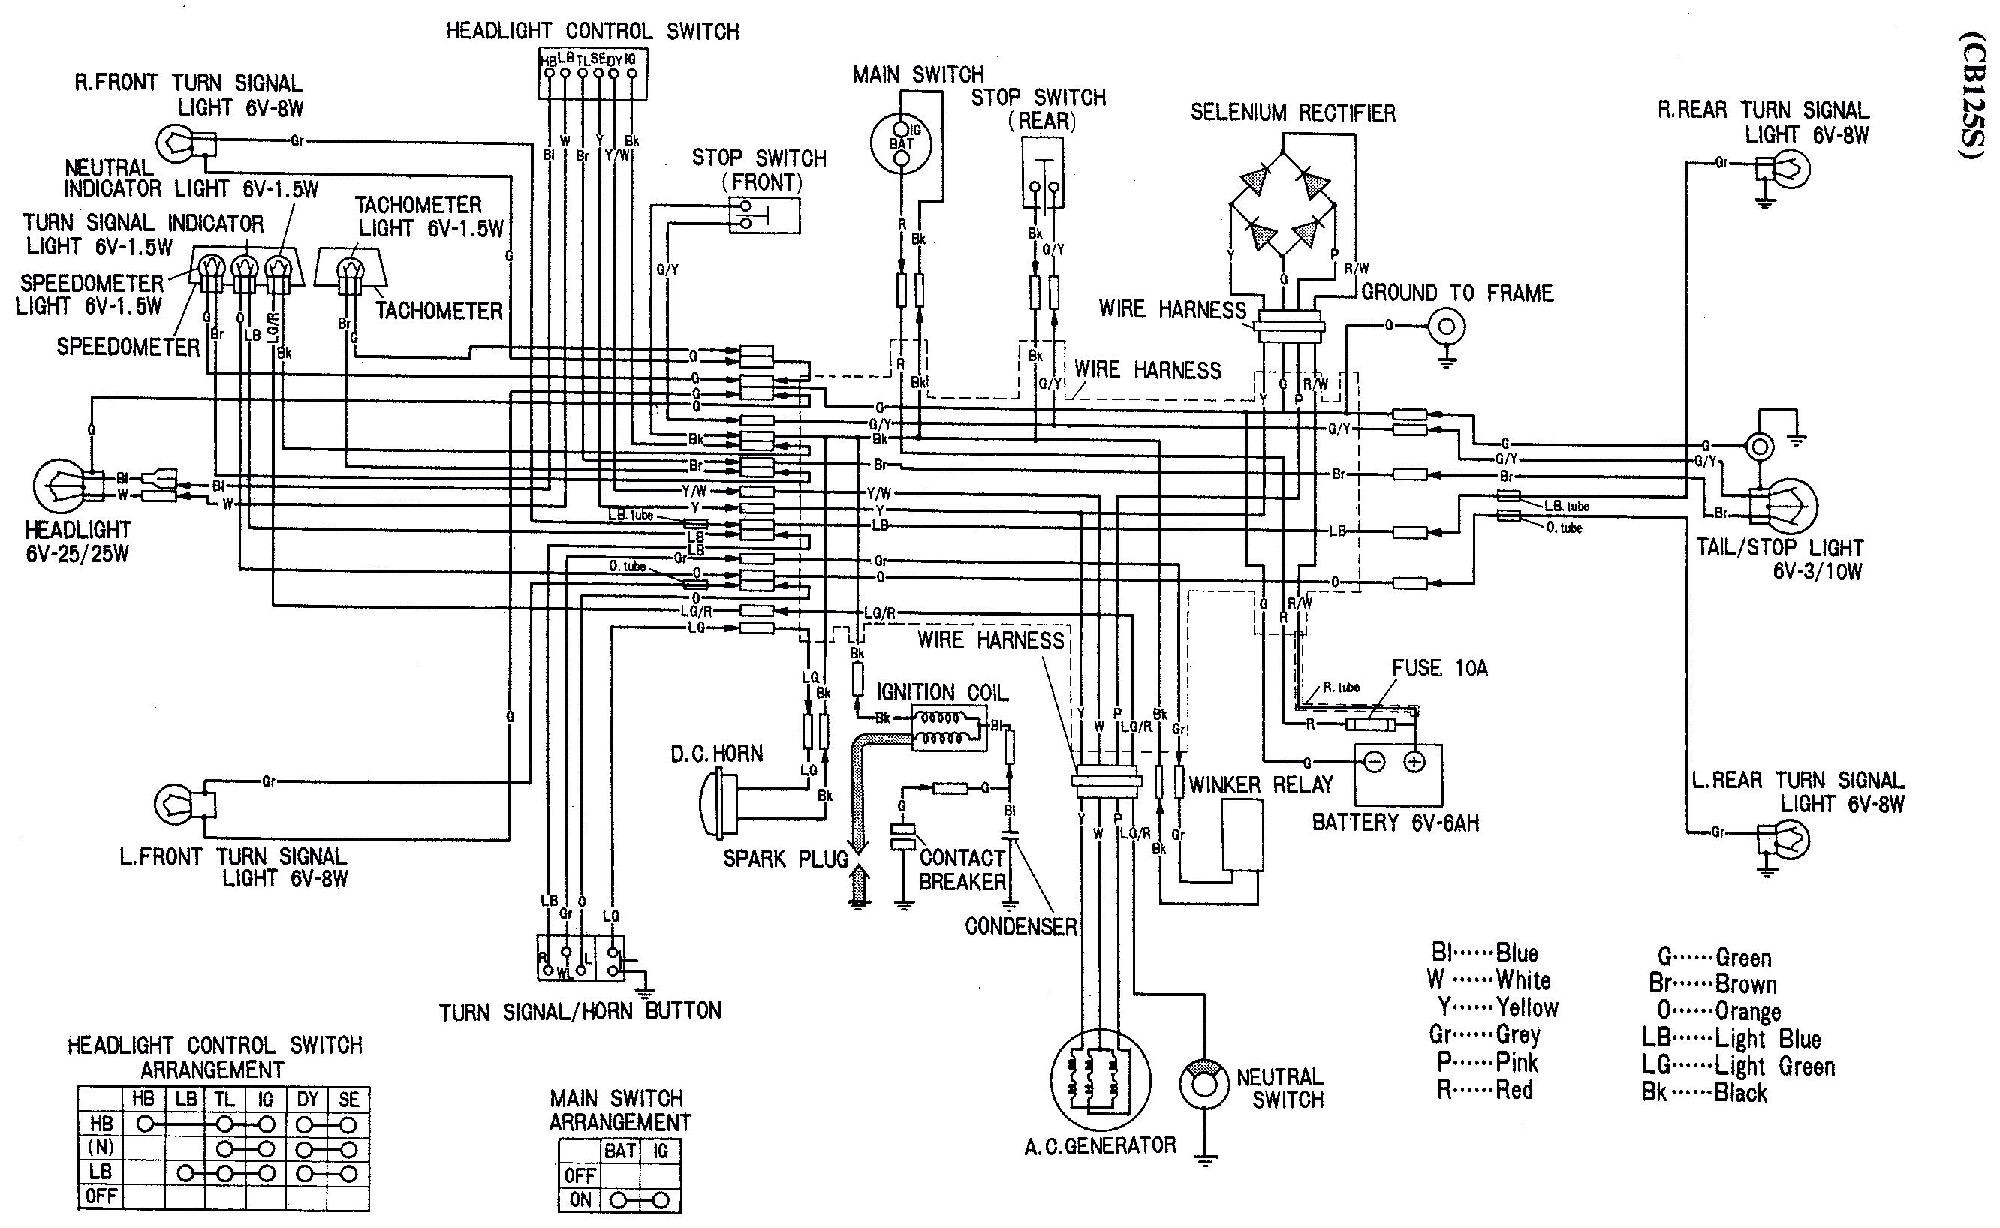 [WRG-1178] Maxon Cb Power Wiring Diagram